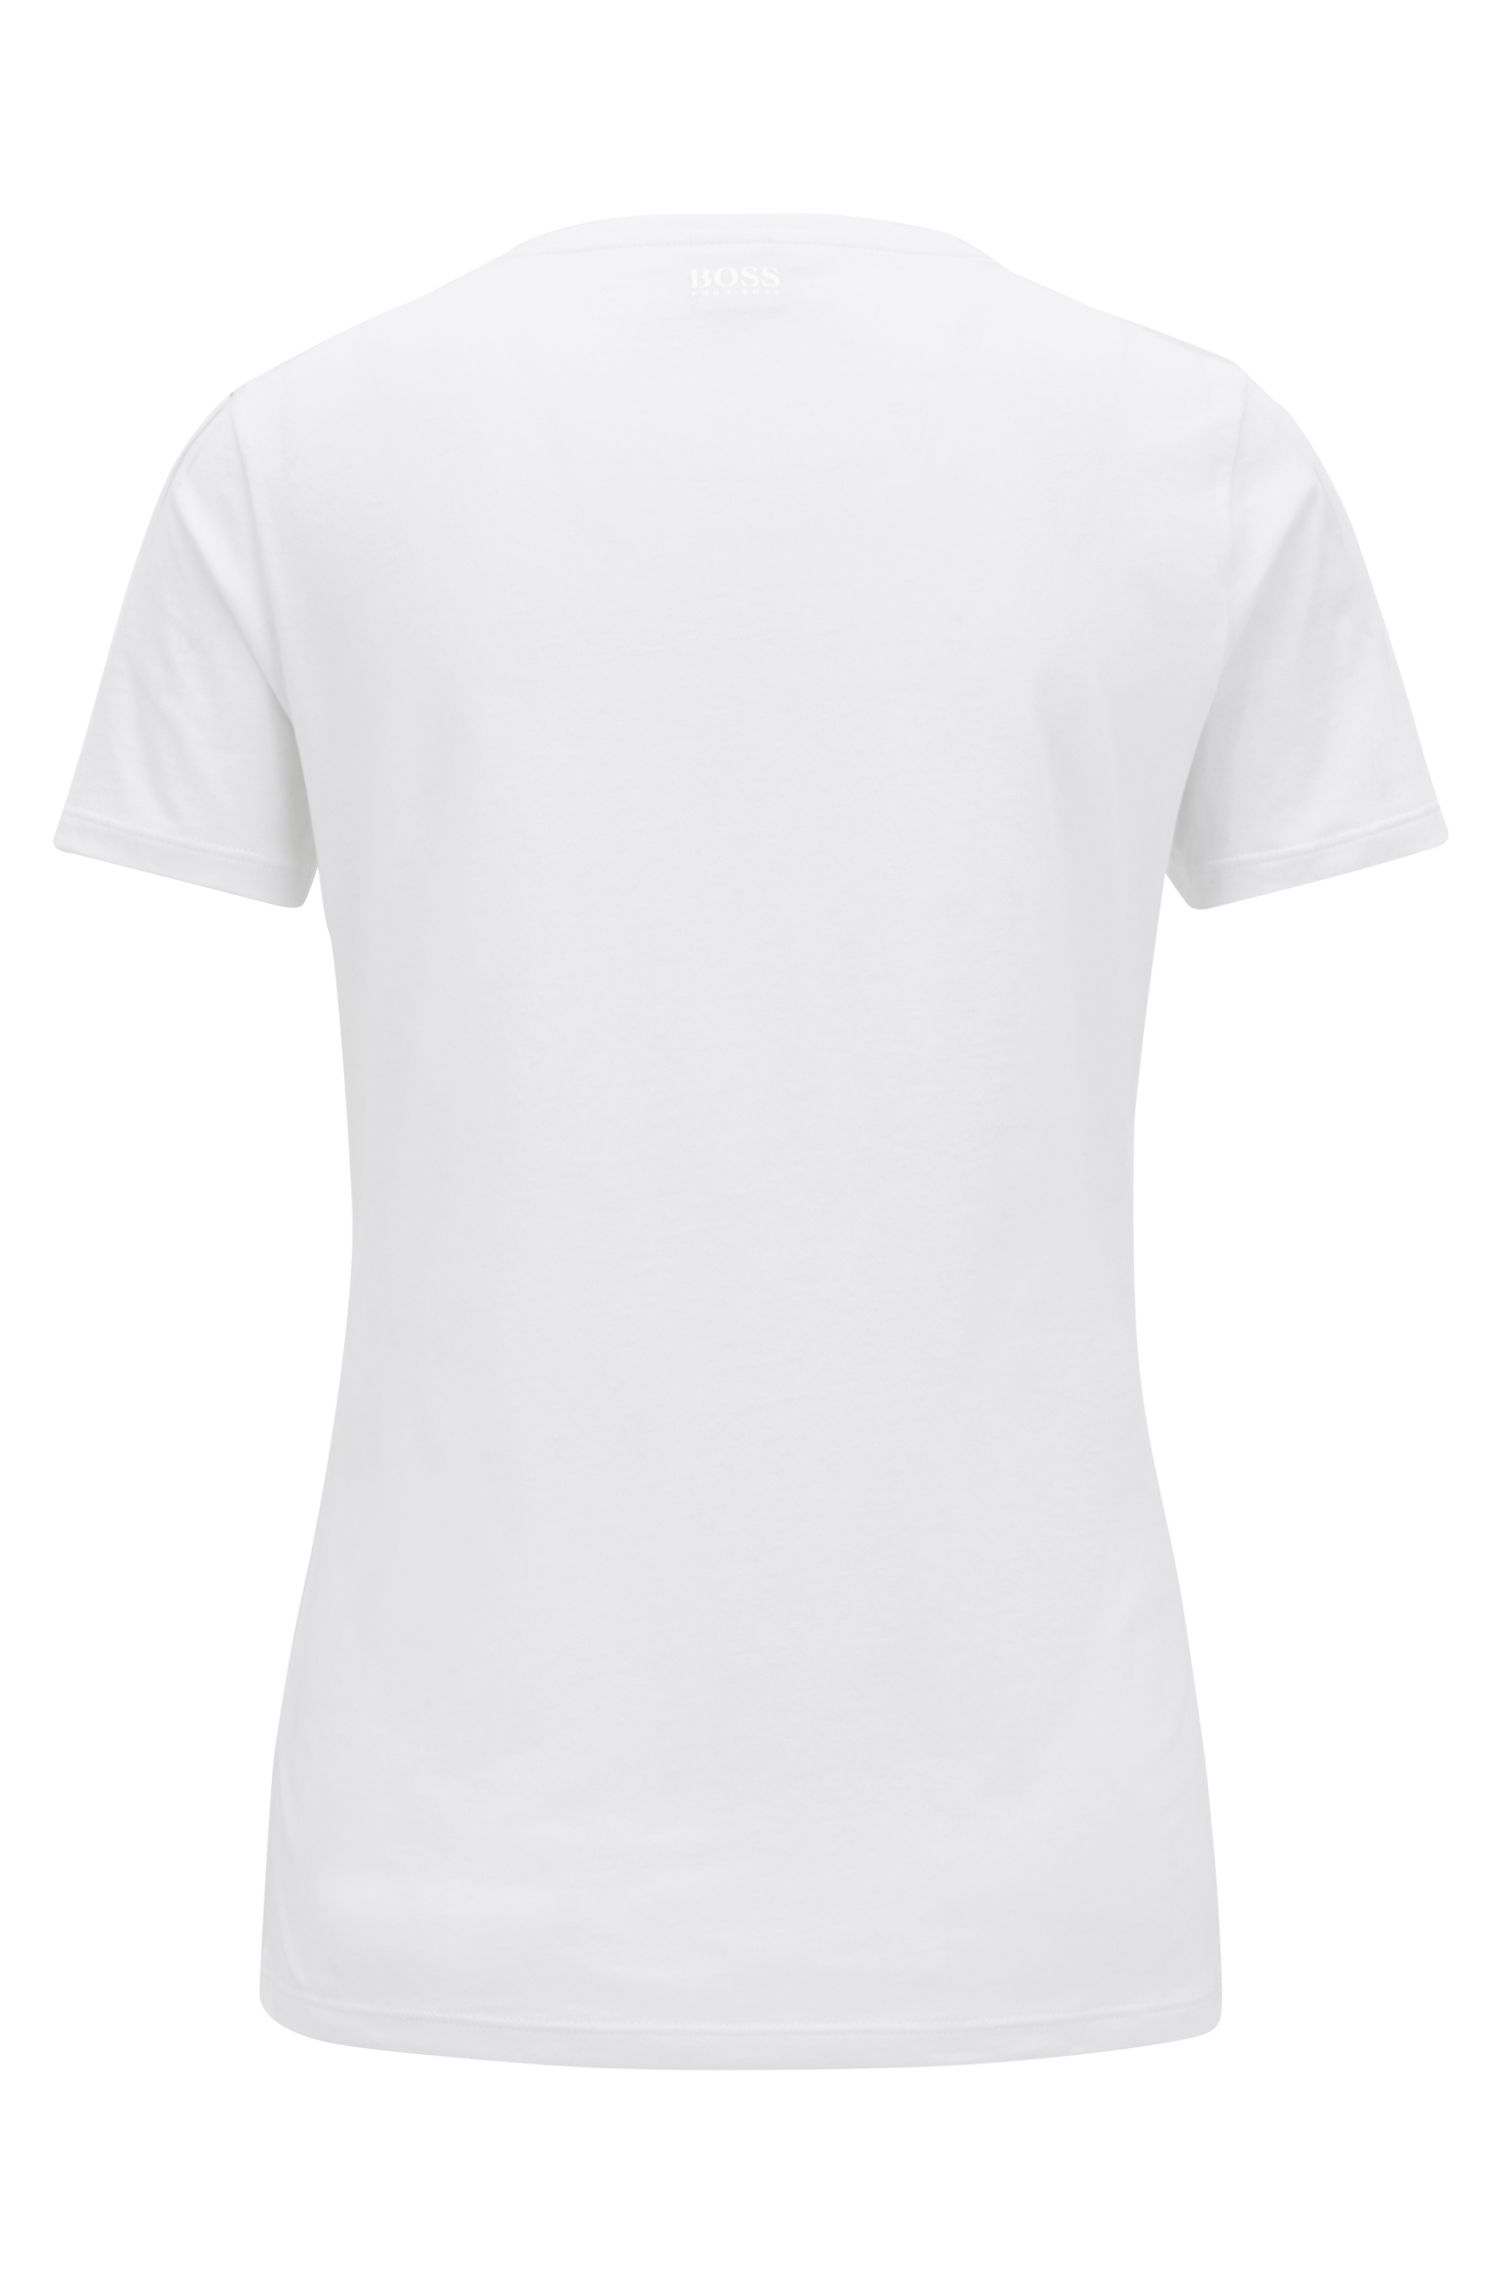 T-shirt Slim Fit en jersey de coton à message imprimé